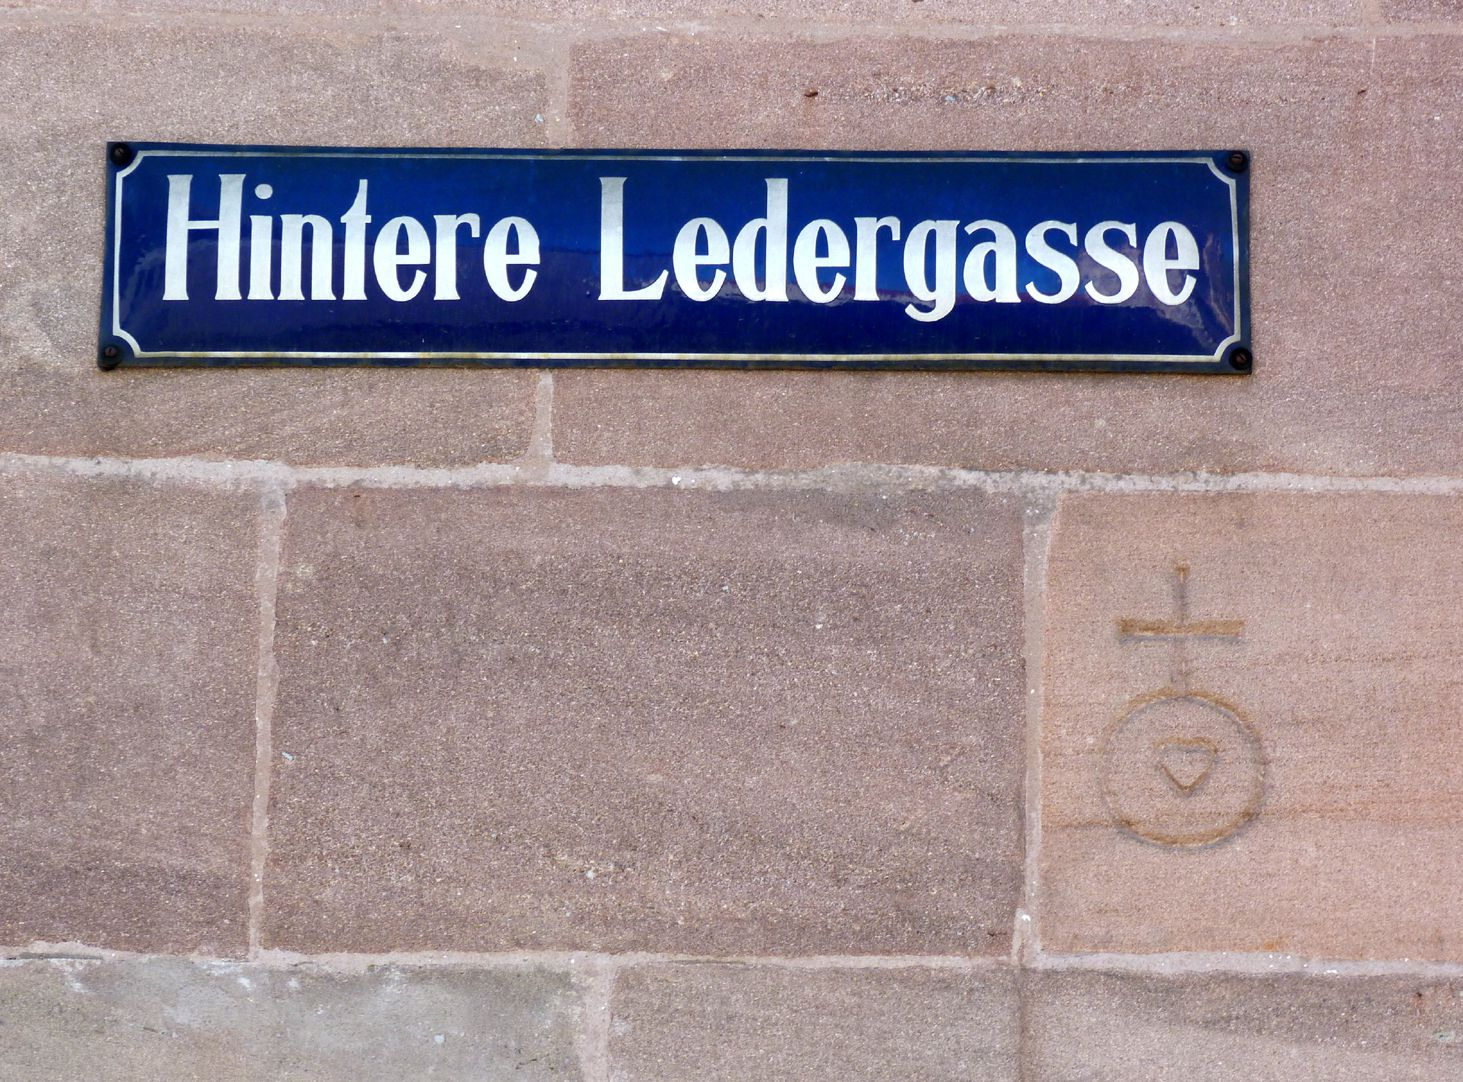 Commercial and residential building Kaiserstraße Masonry brand mark on Hintere Ledergasse